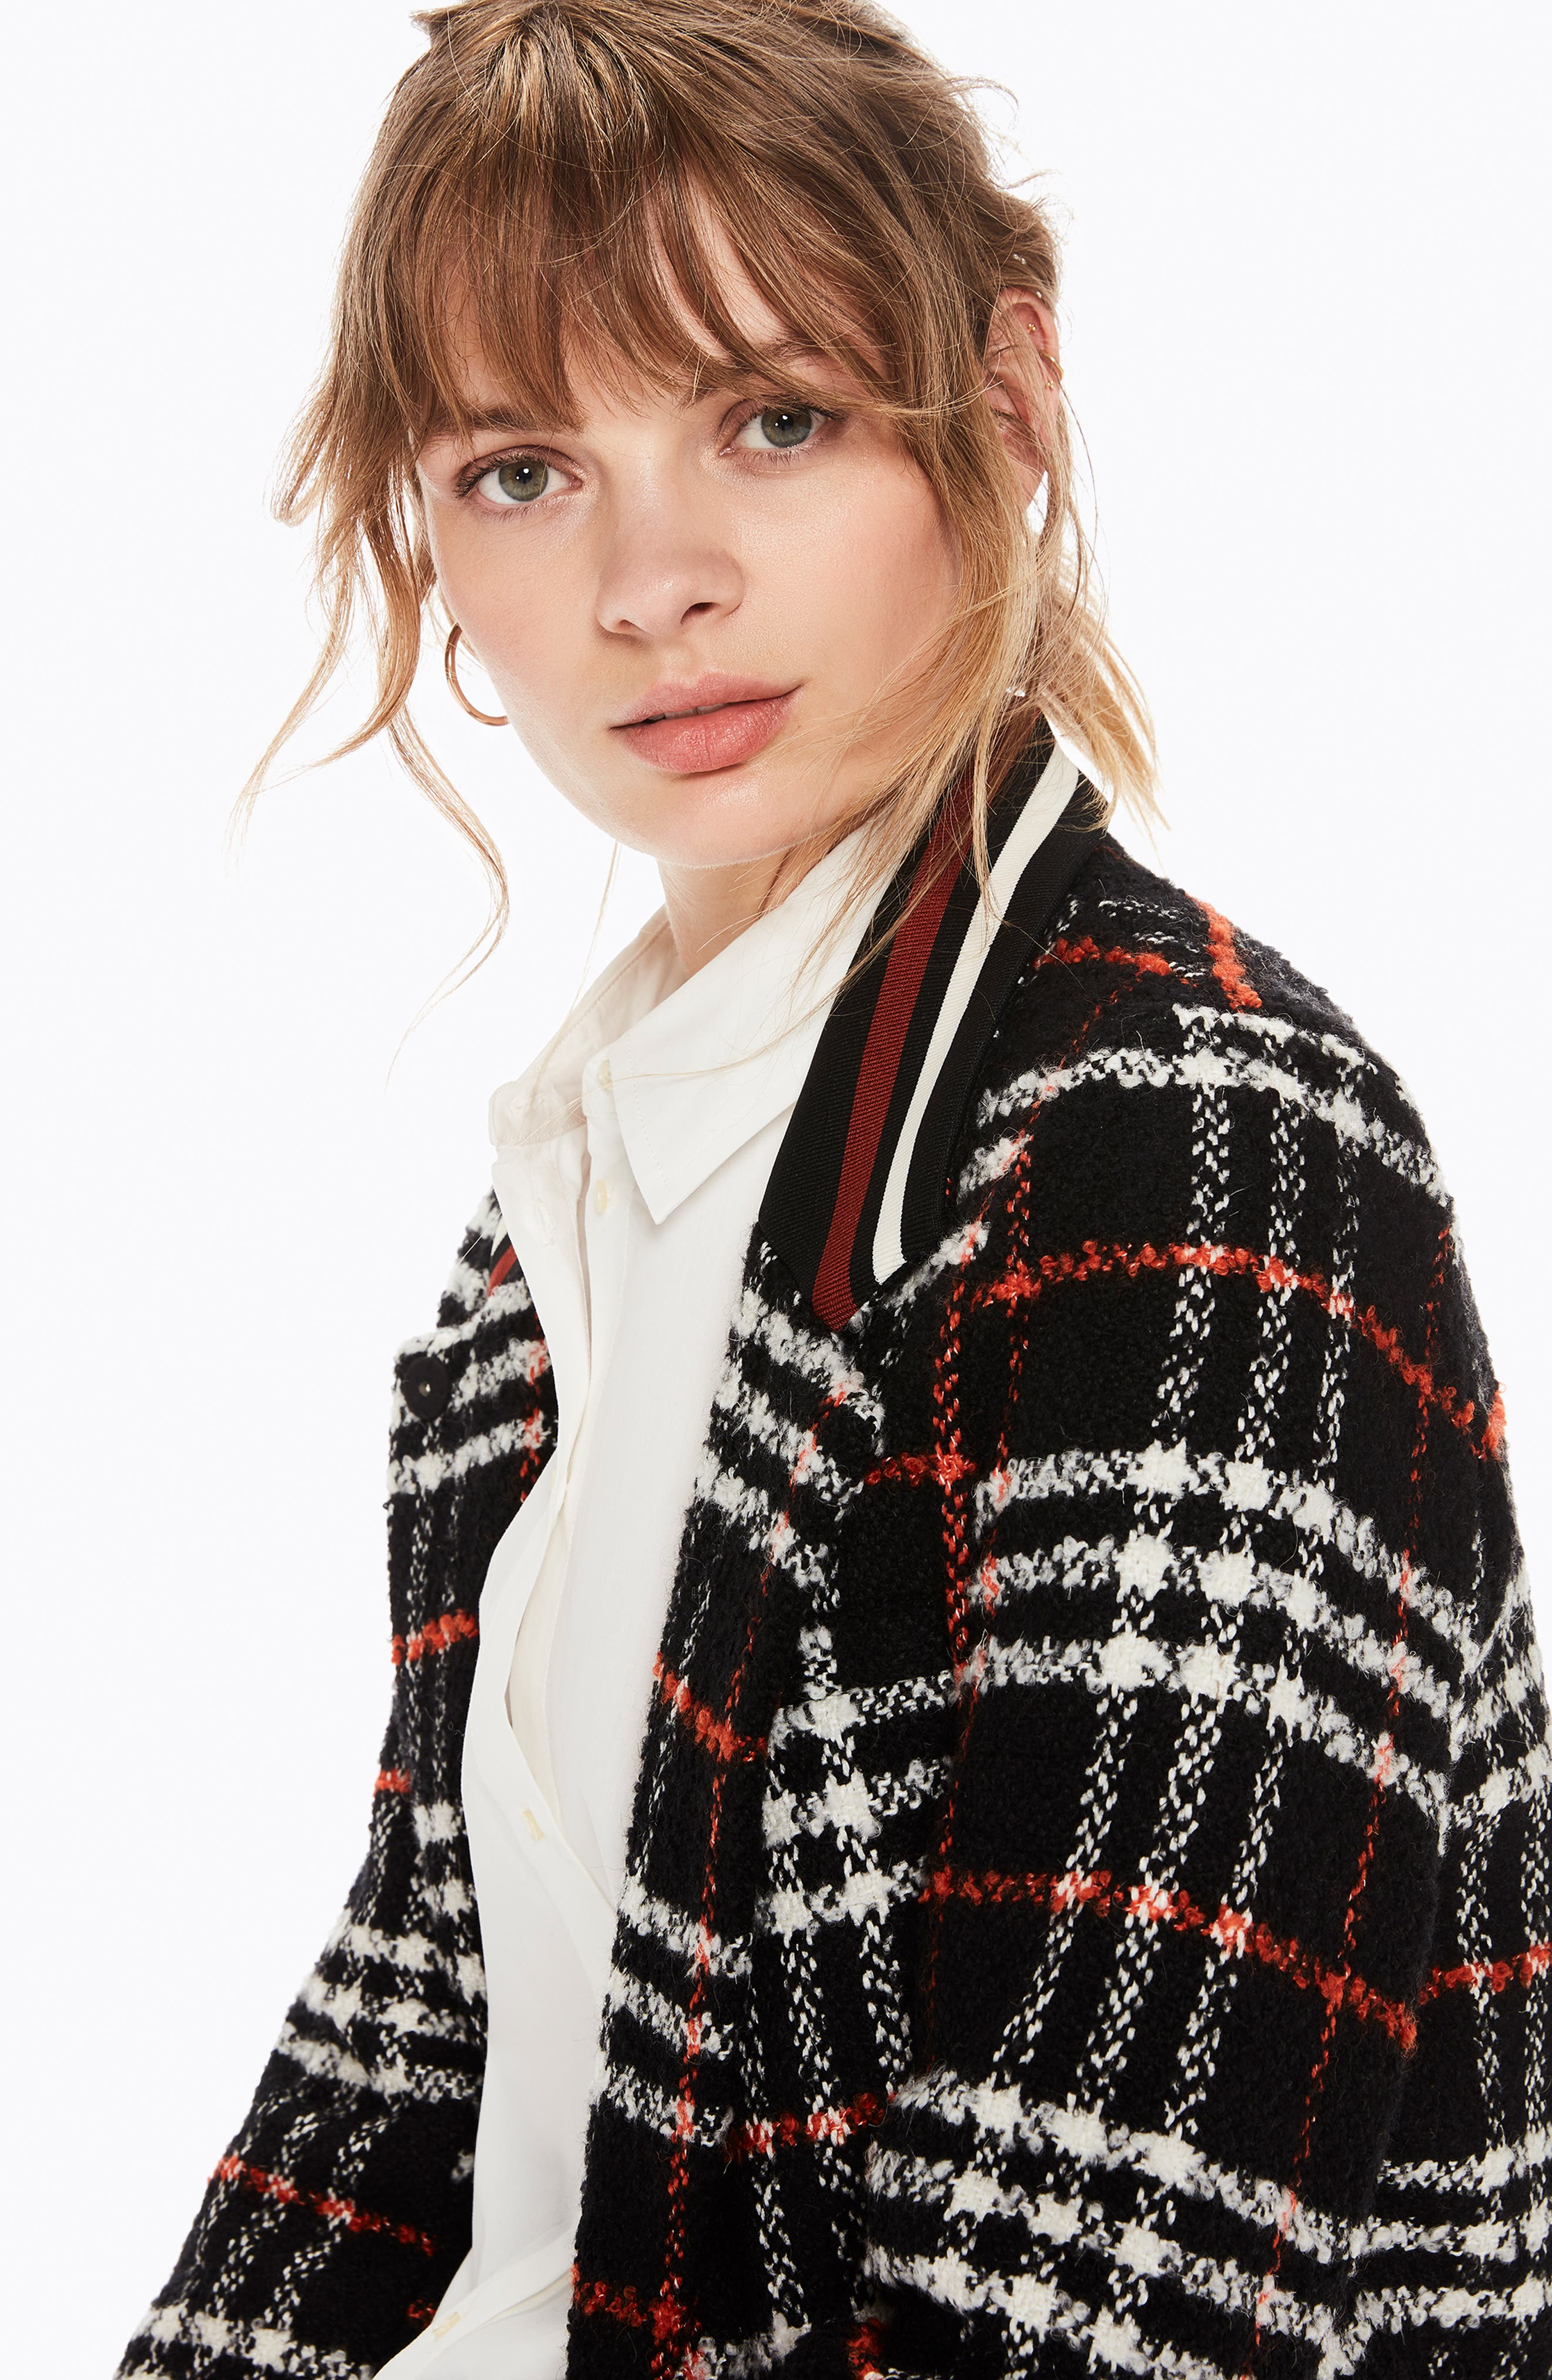 Bonded Wool Blend Jacket,                             Alternate thumbnail 5, color,                             BLACK AND RED PLAID